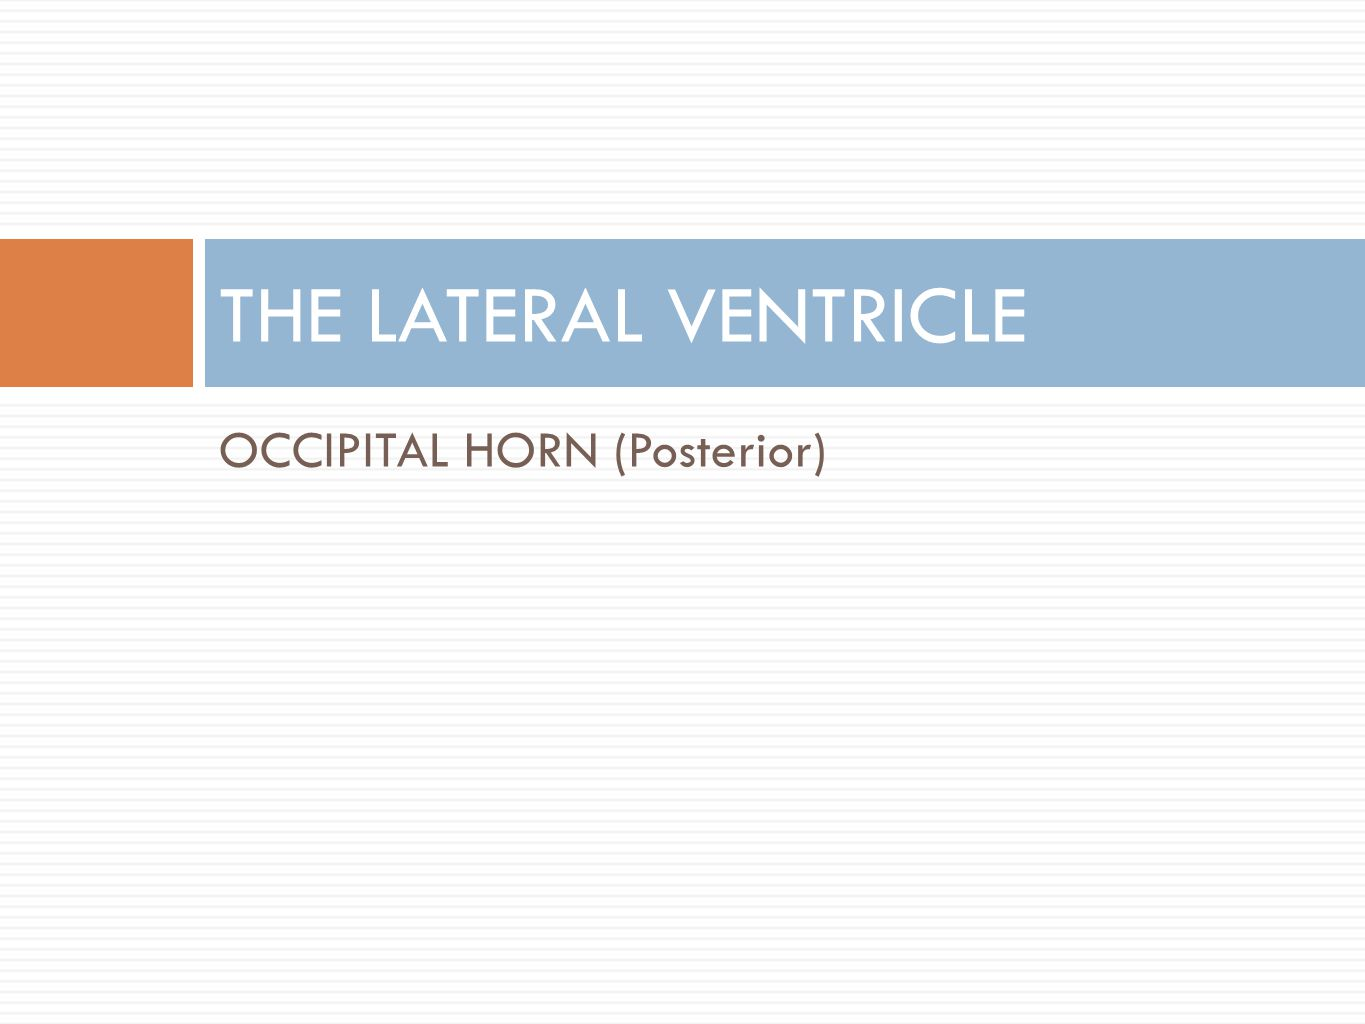 THE LATERAL VENTRICLE OCCIPITAL HORN (Posterior)